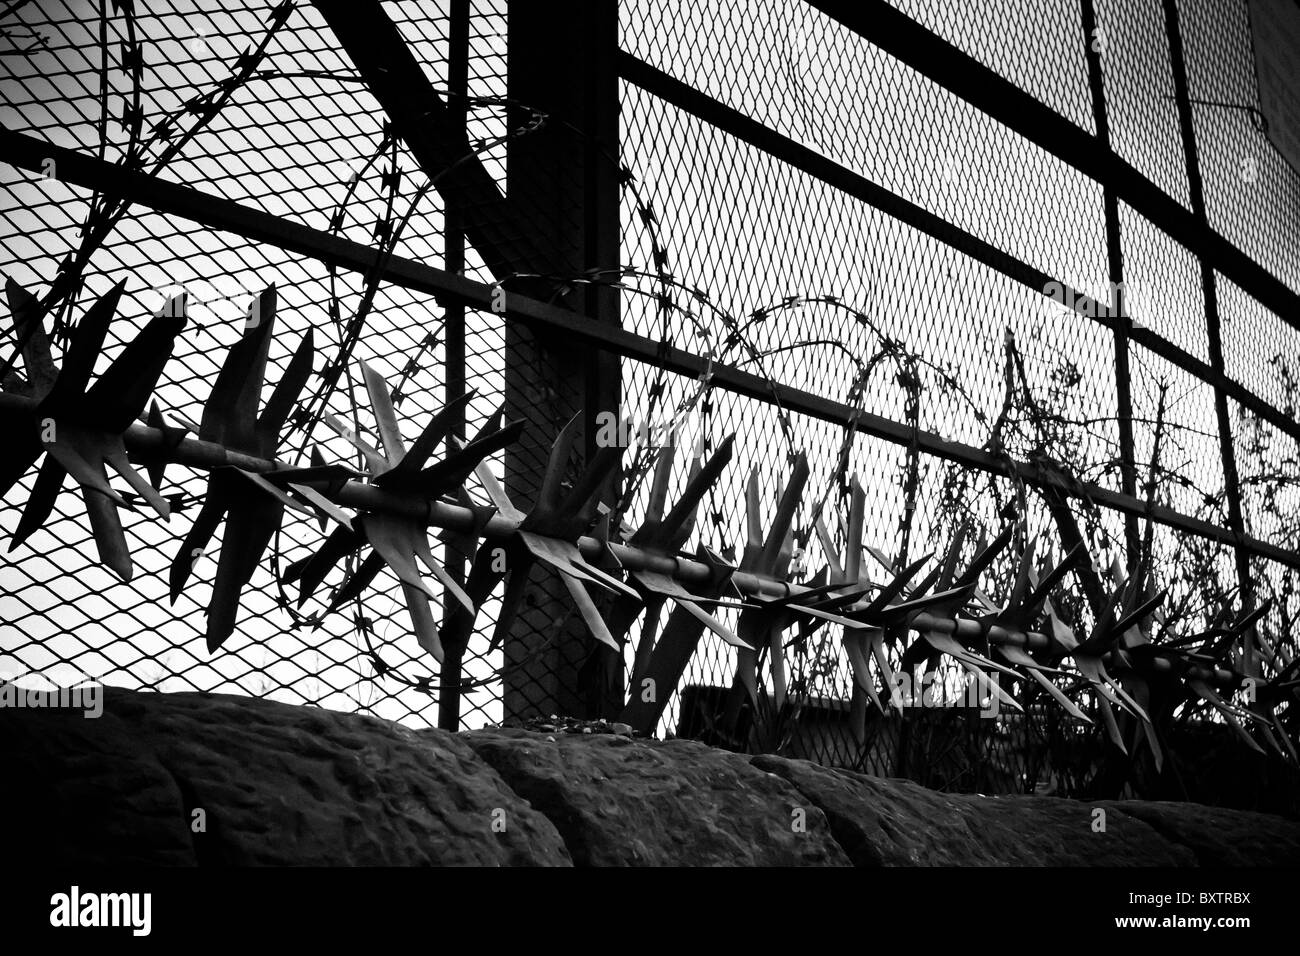 Security Measures of barbed wire, razor wire, revolving spikes and ...